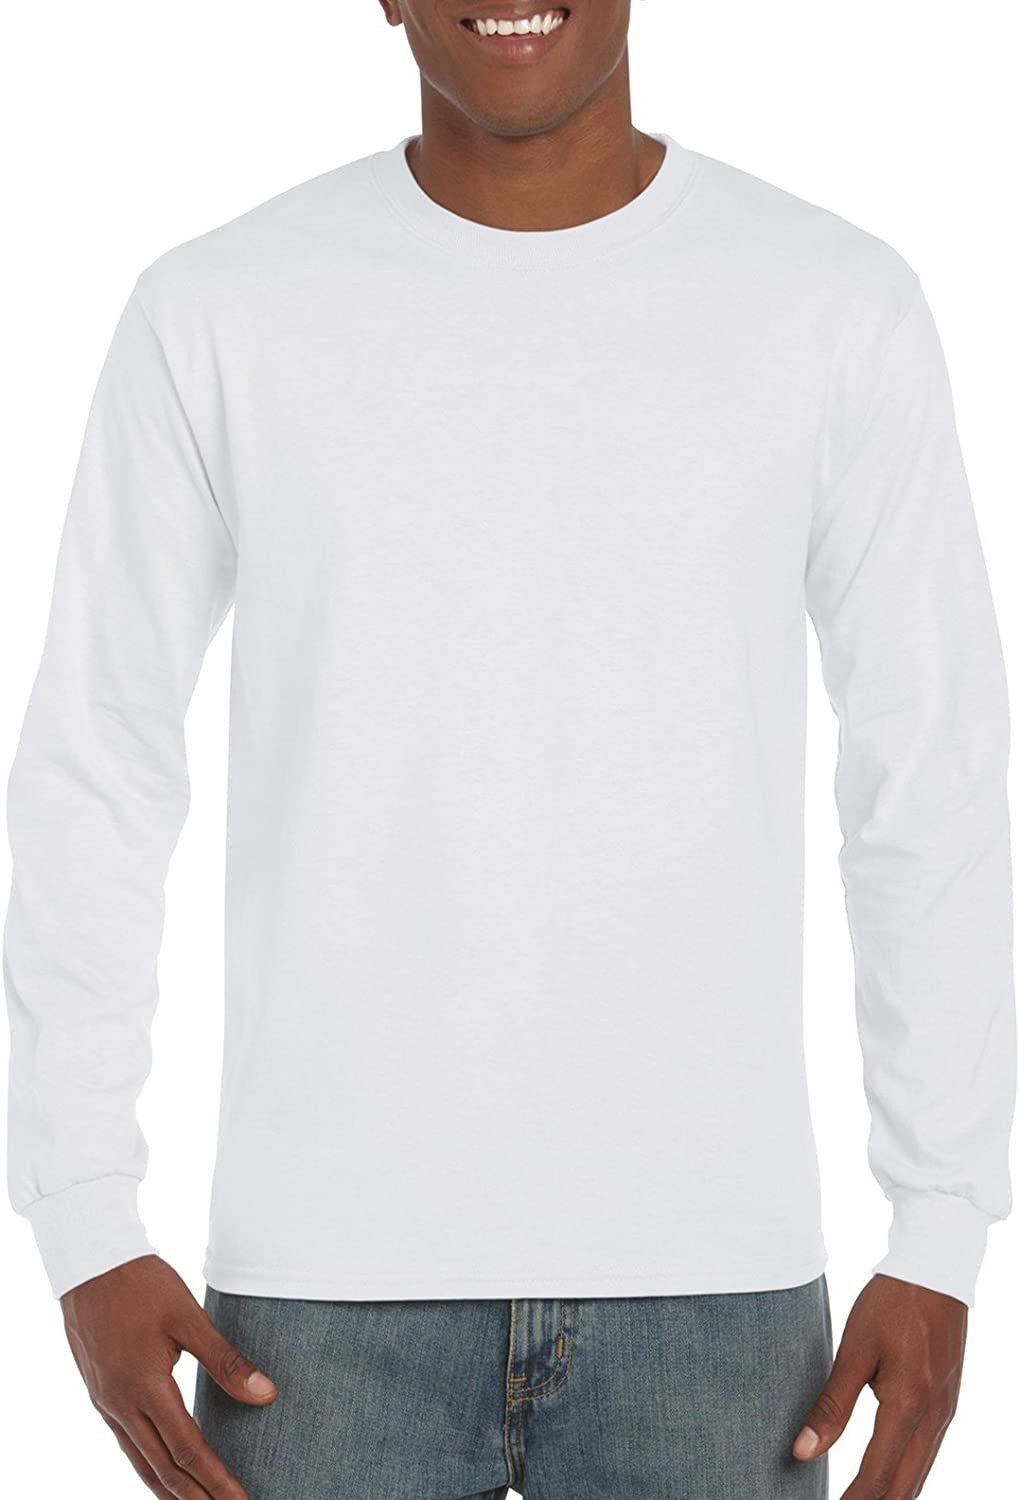 Gildan Men's G2400 Ultra Cotton Jersey Long Sleeve Tee |